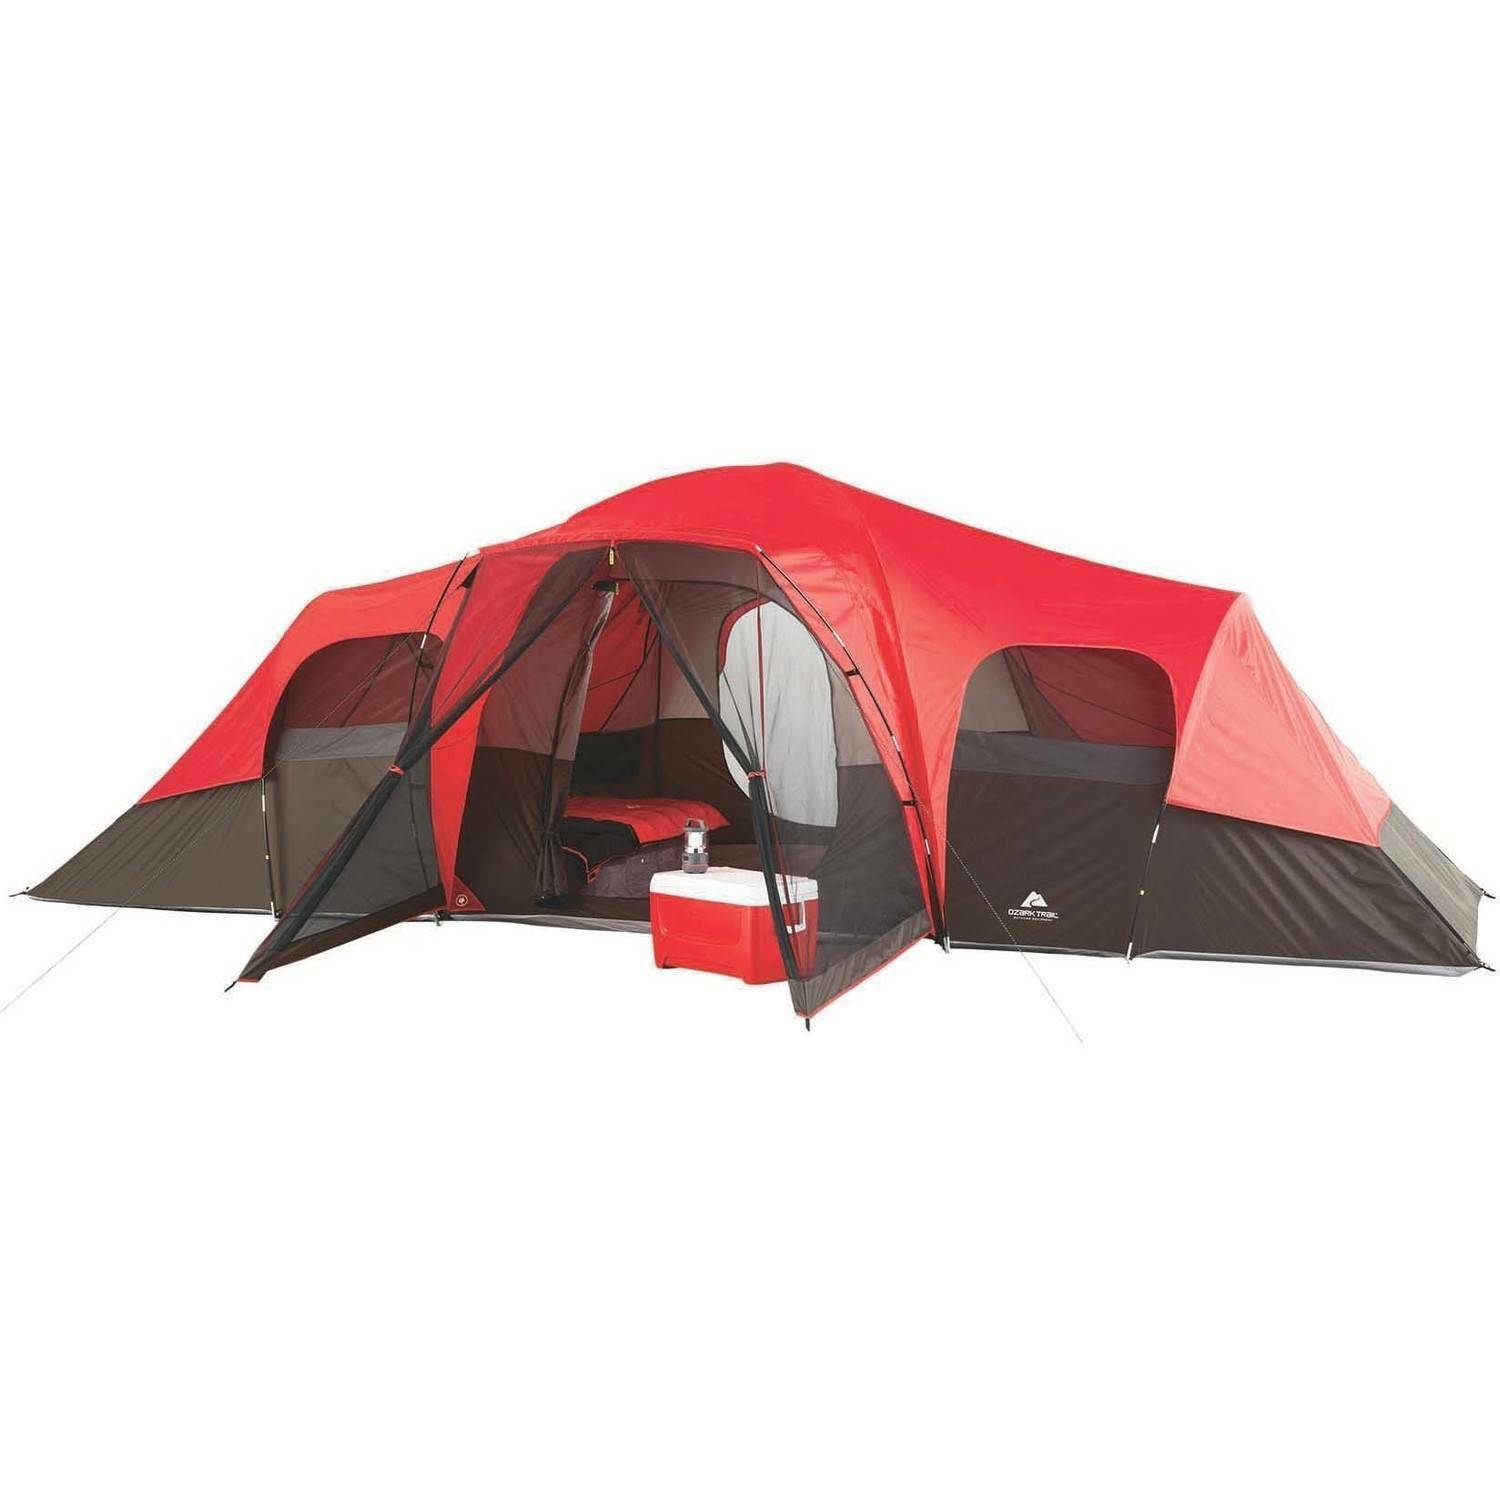 Large Camping Tent Outdoor Picnic Travel Family  Cabin House 10 Person 3 Rooms  presenting all the latest high street fashion